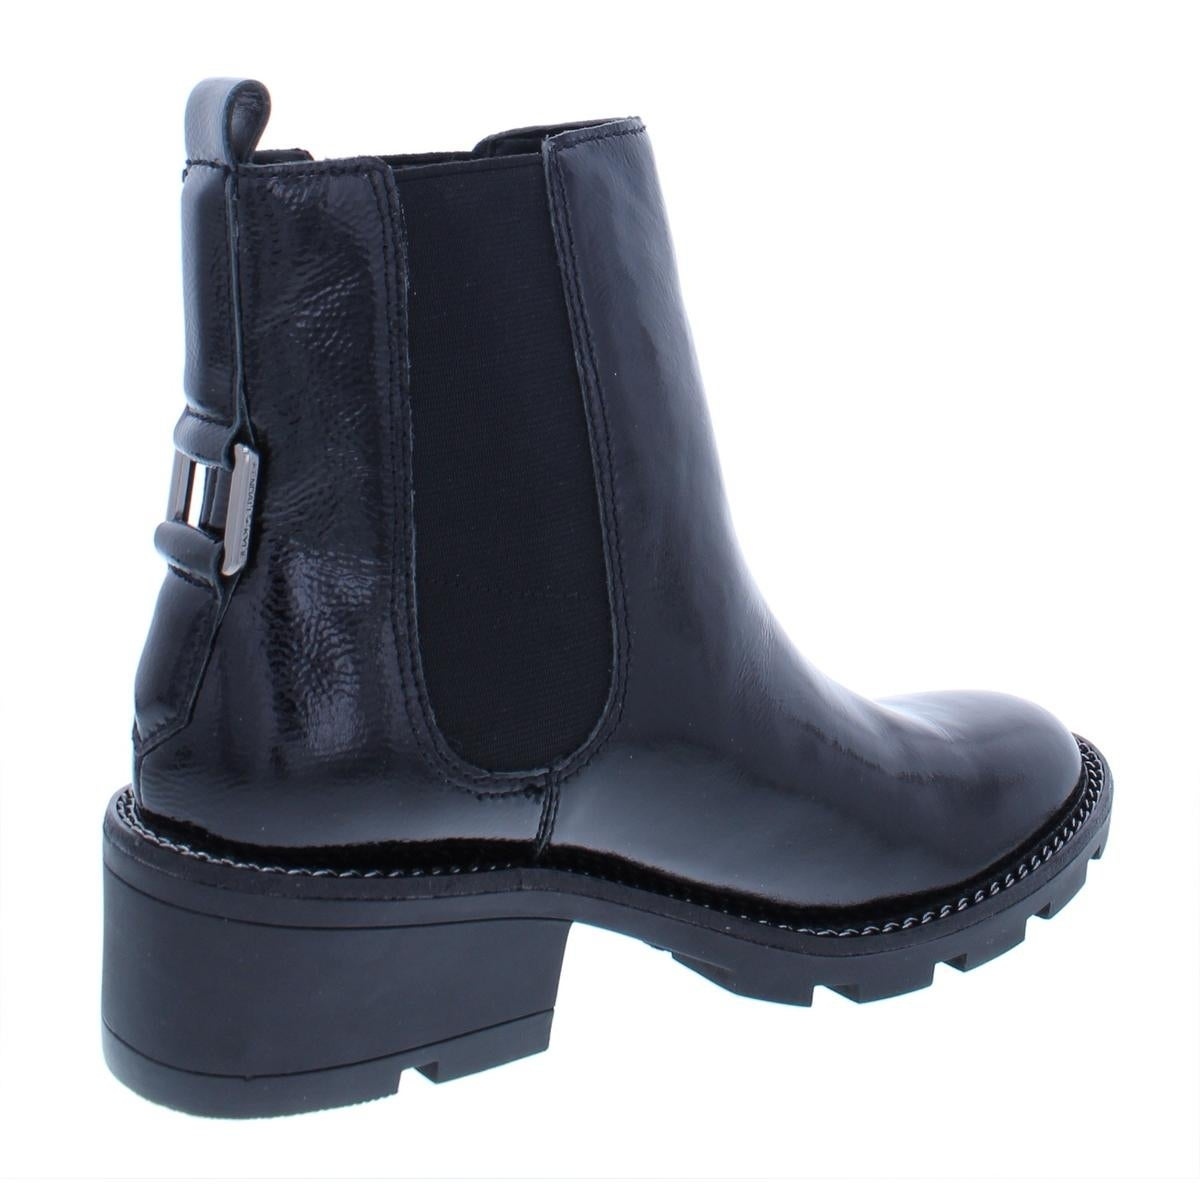 573f02155d56b Shop Kendall + Kylie Womens Porter Chelsea Boots Patent Leather Block Heel  - Free Shipping Today - Overstock - 26639368